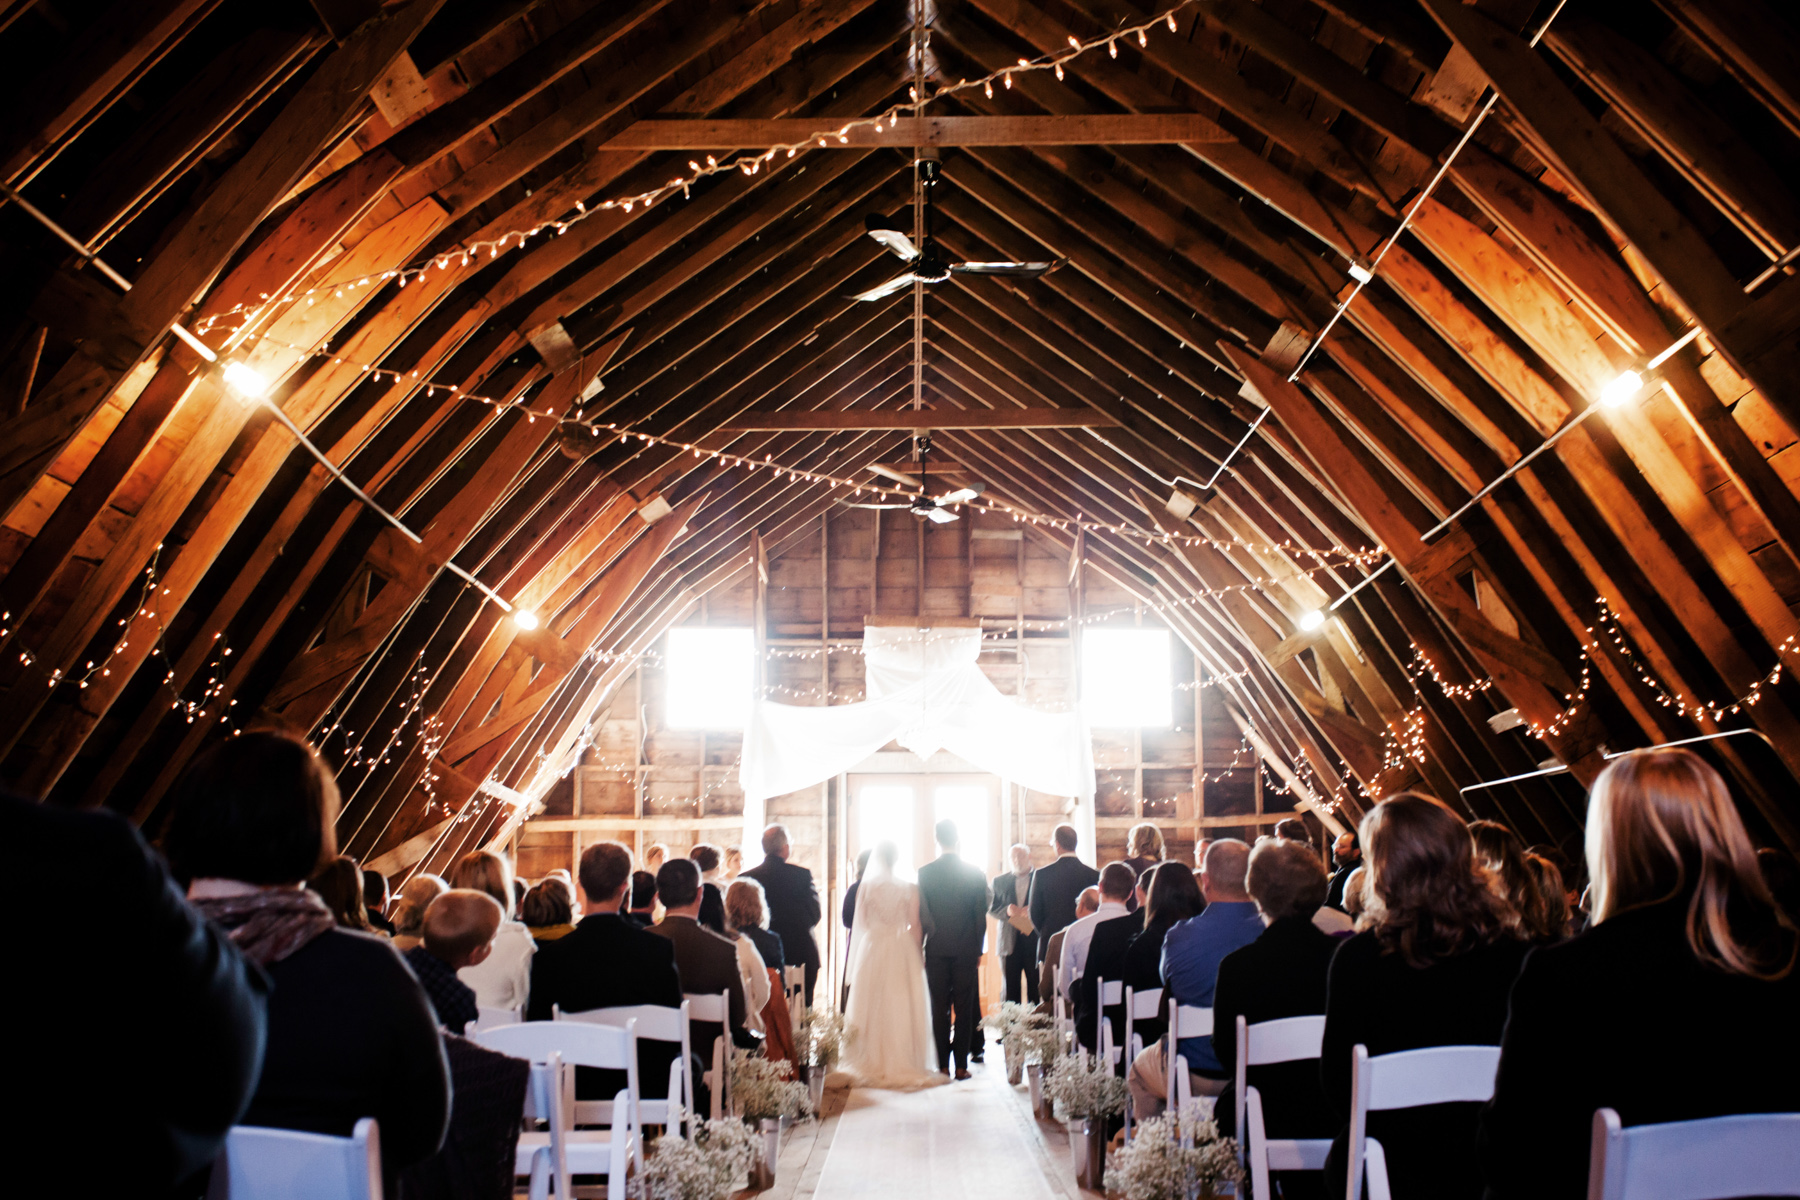 wedding-photographer-rochester-coops-event-barn-clewell-photography-26.jpg